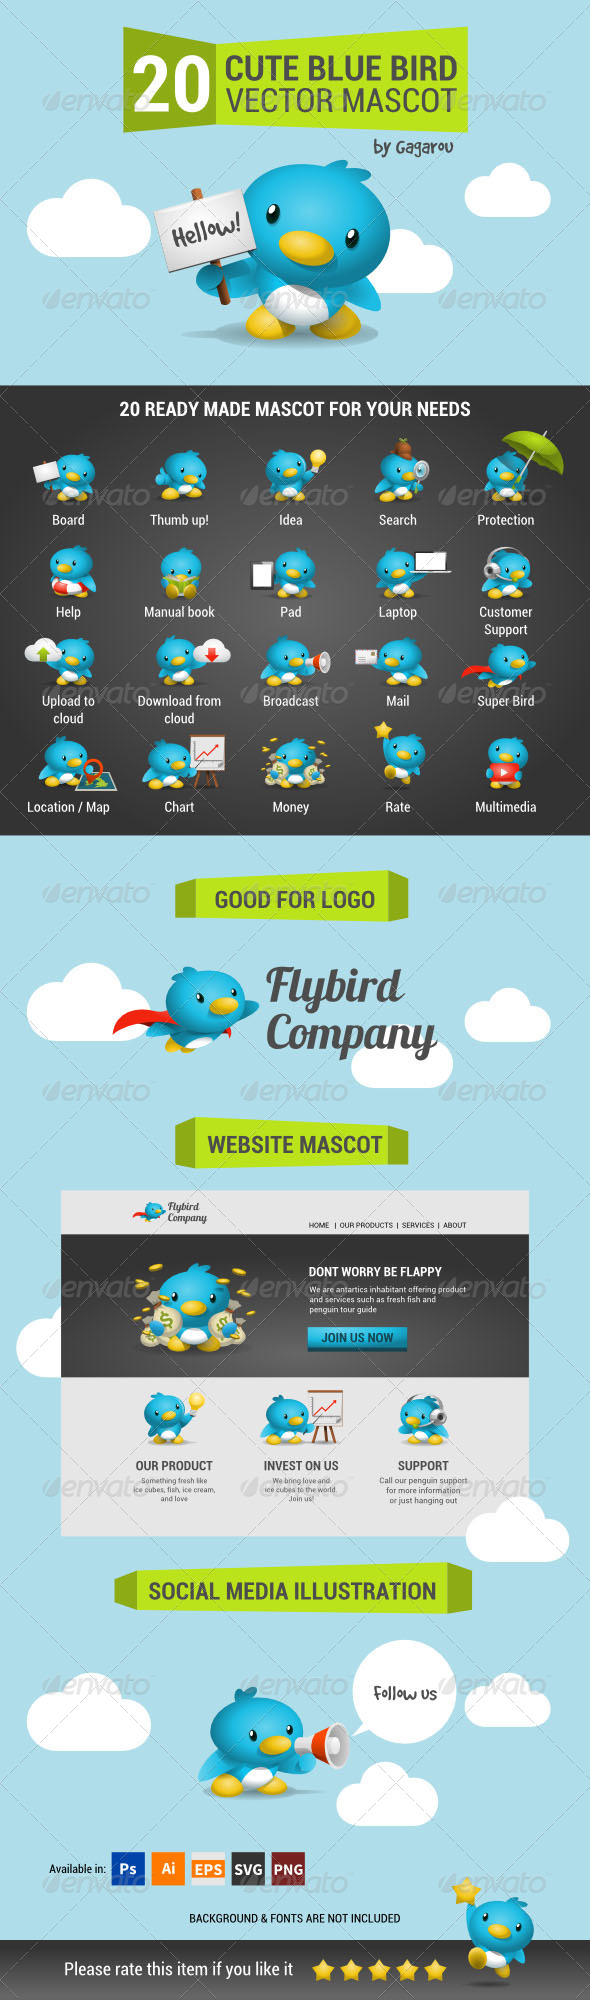 Cute Blue Bird Mascot Pack